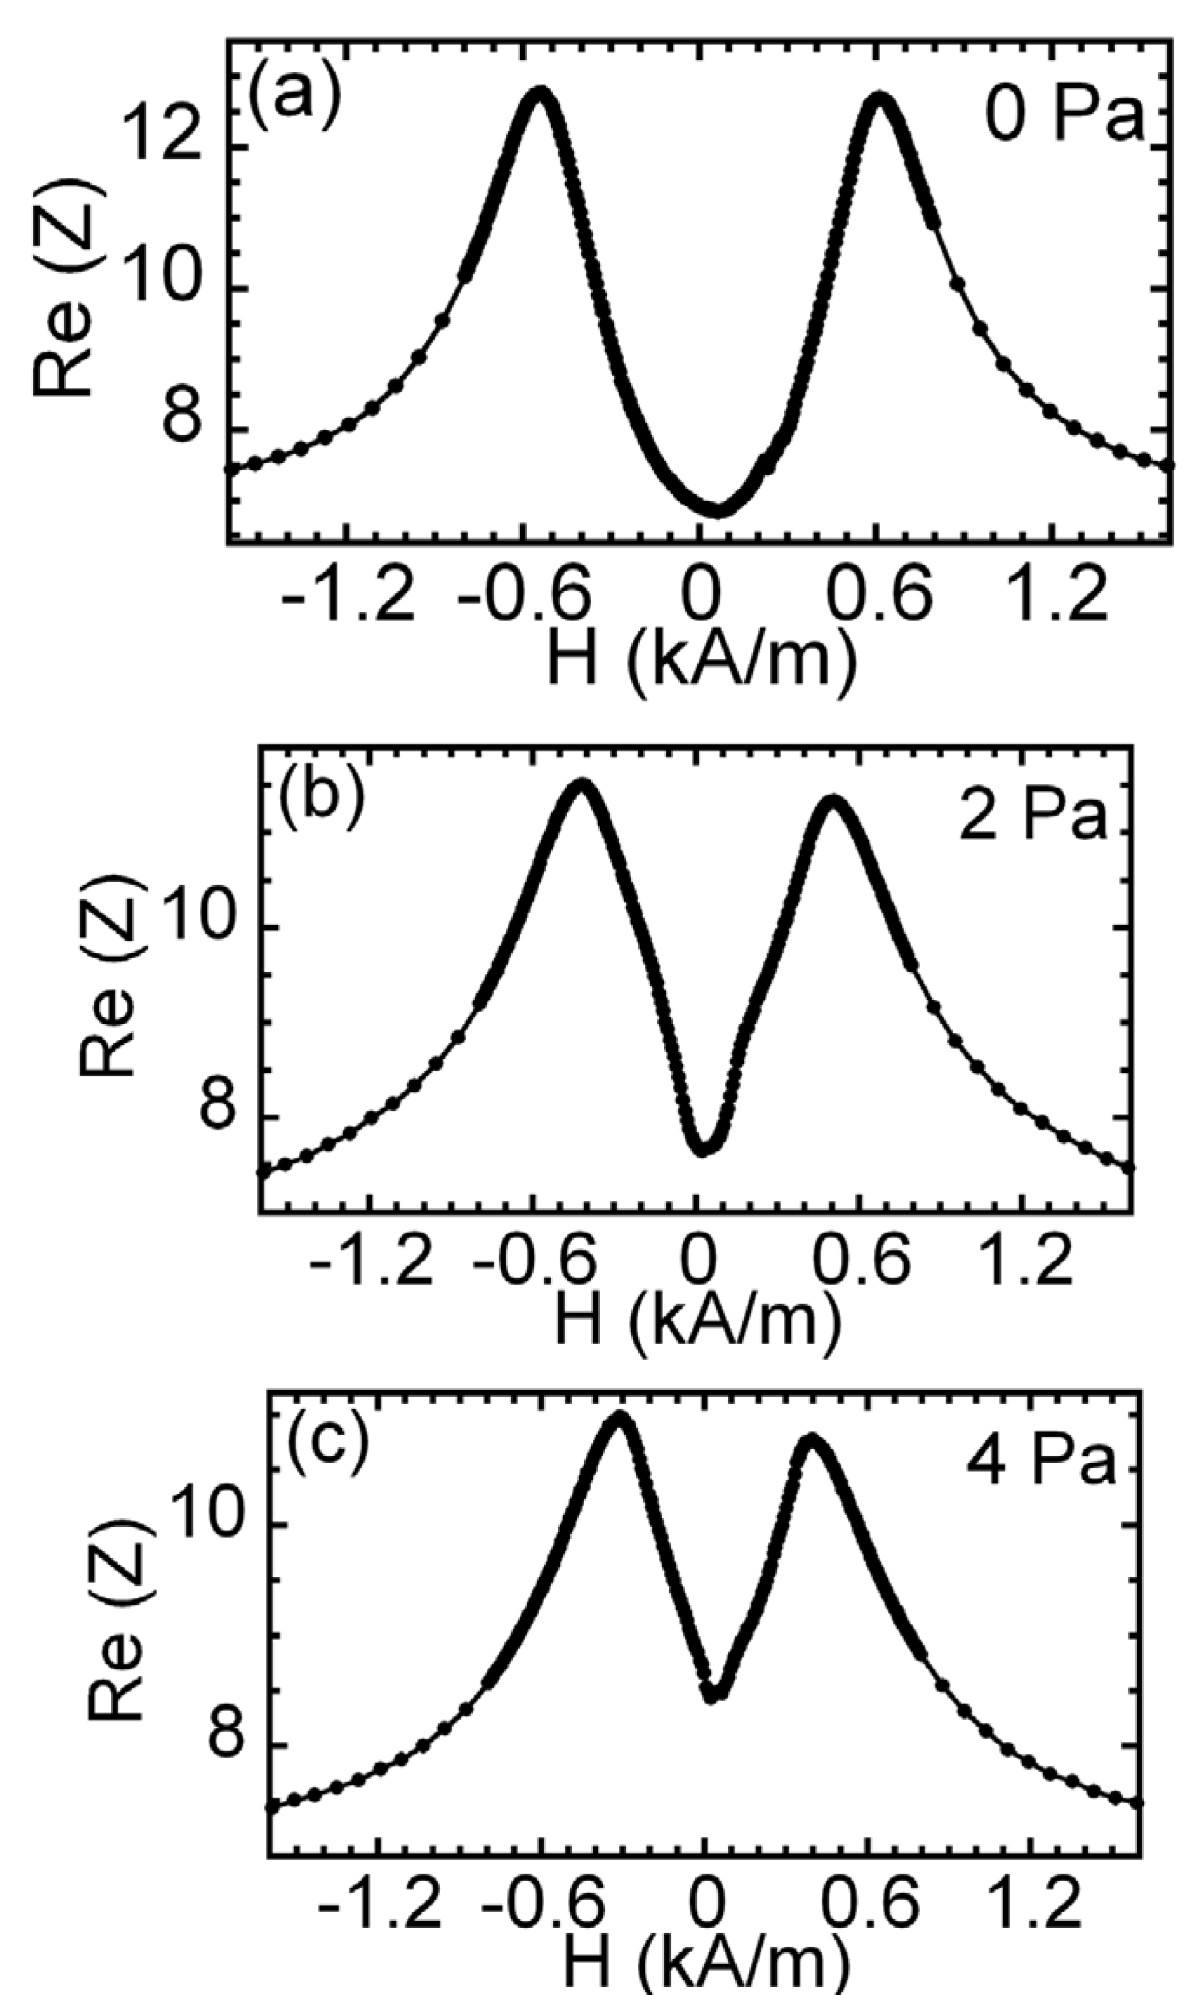 http://static-content.springer.com/image/art%3A10.1186%2F1556-276X-7-230/MediaObjects/11671_2012_Article_770_Fig4_HTML.jpg